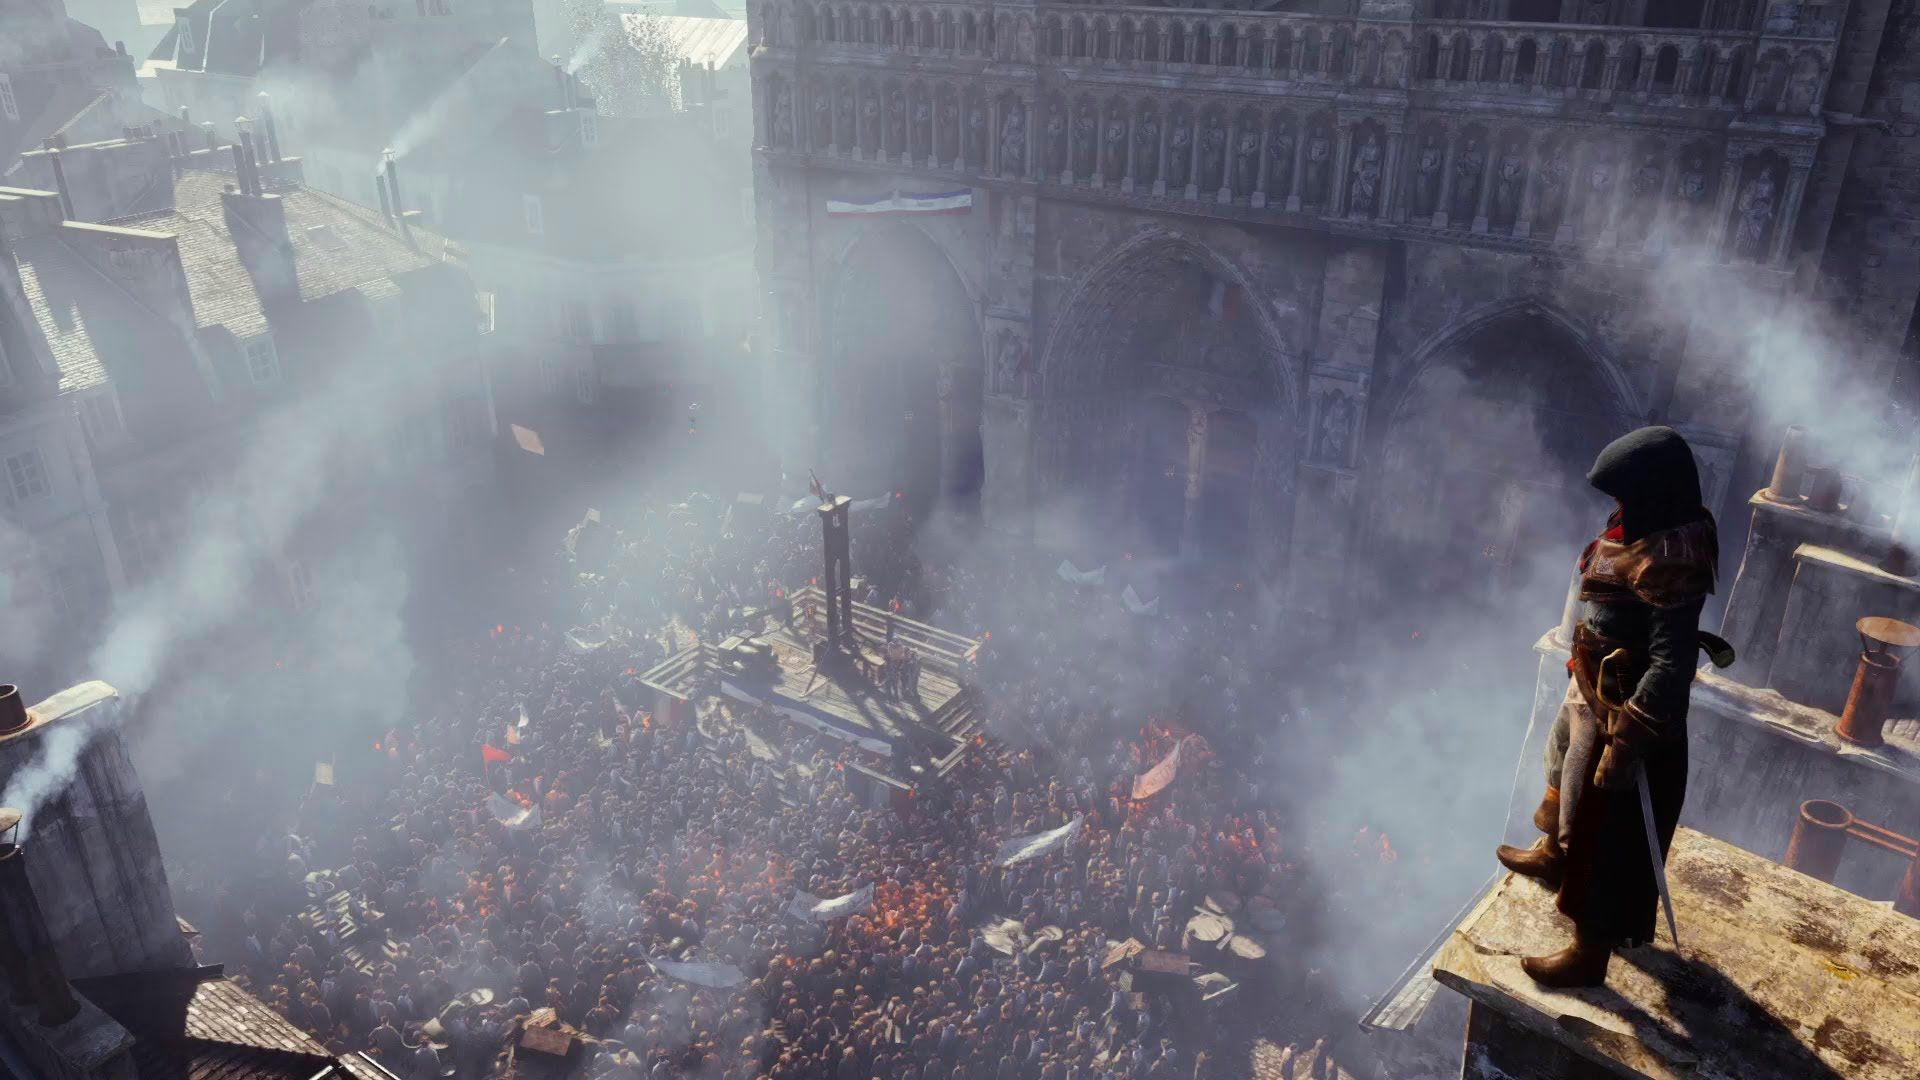 Assassin's Creed Unity Gameplay! This game looks ten times better than Black Flag! I cannot wait!